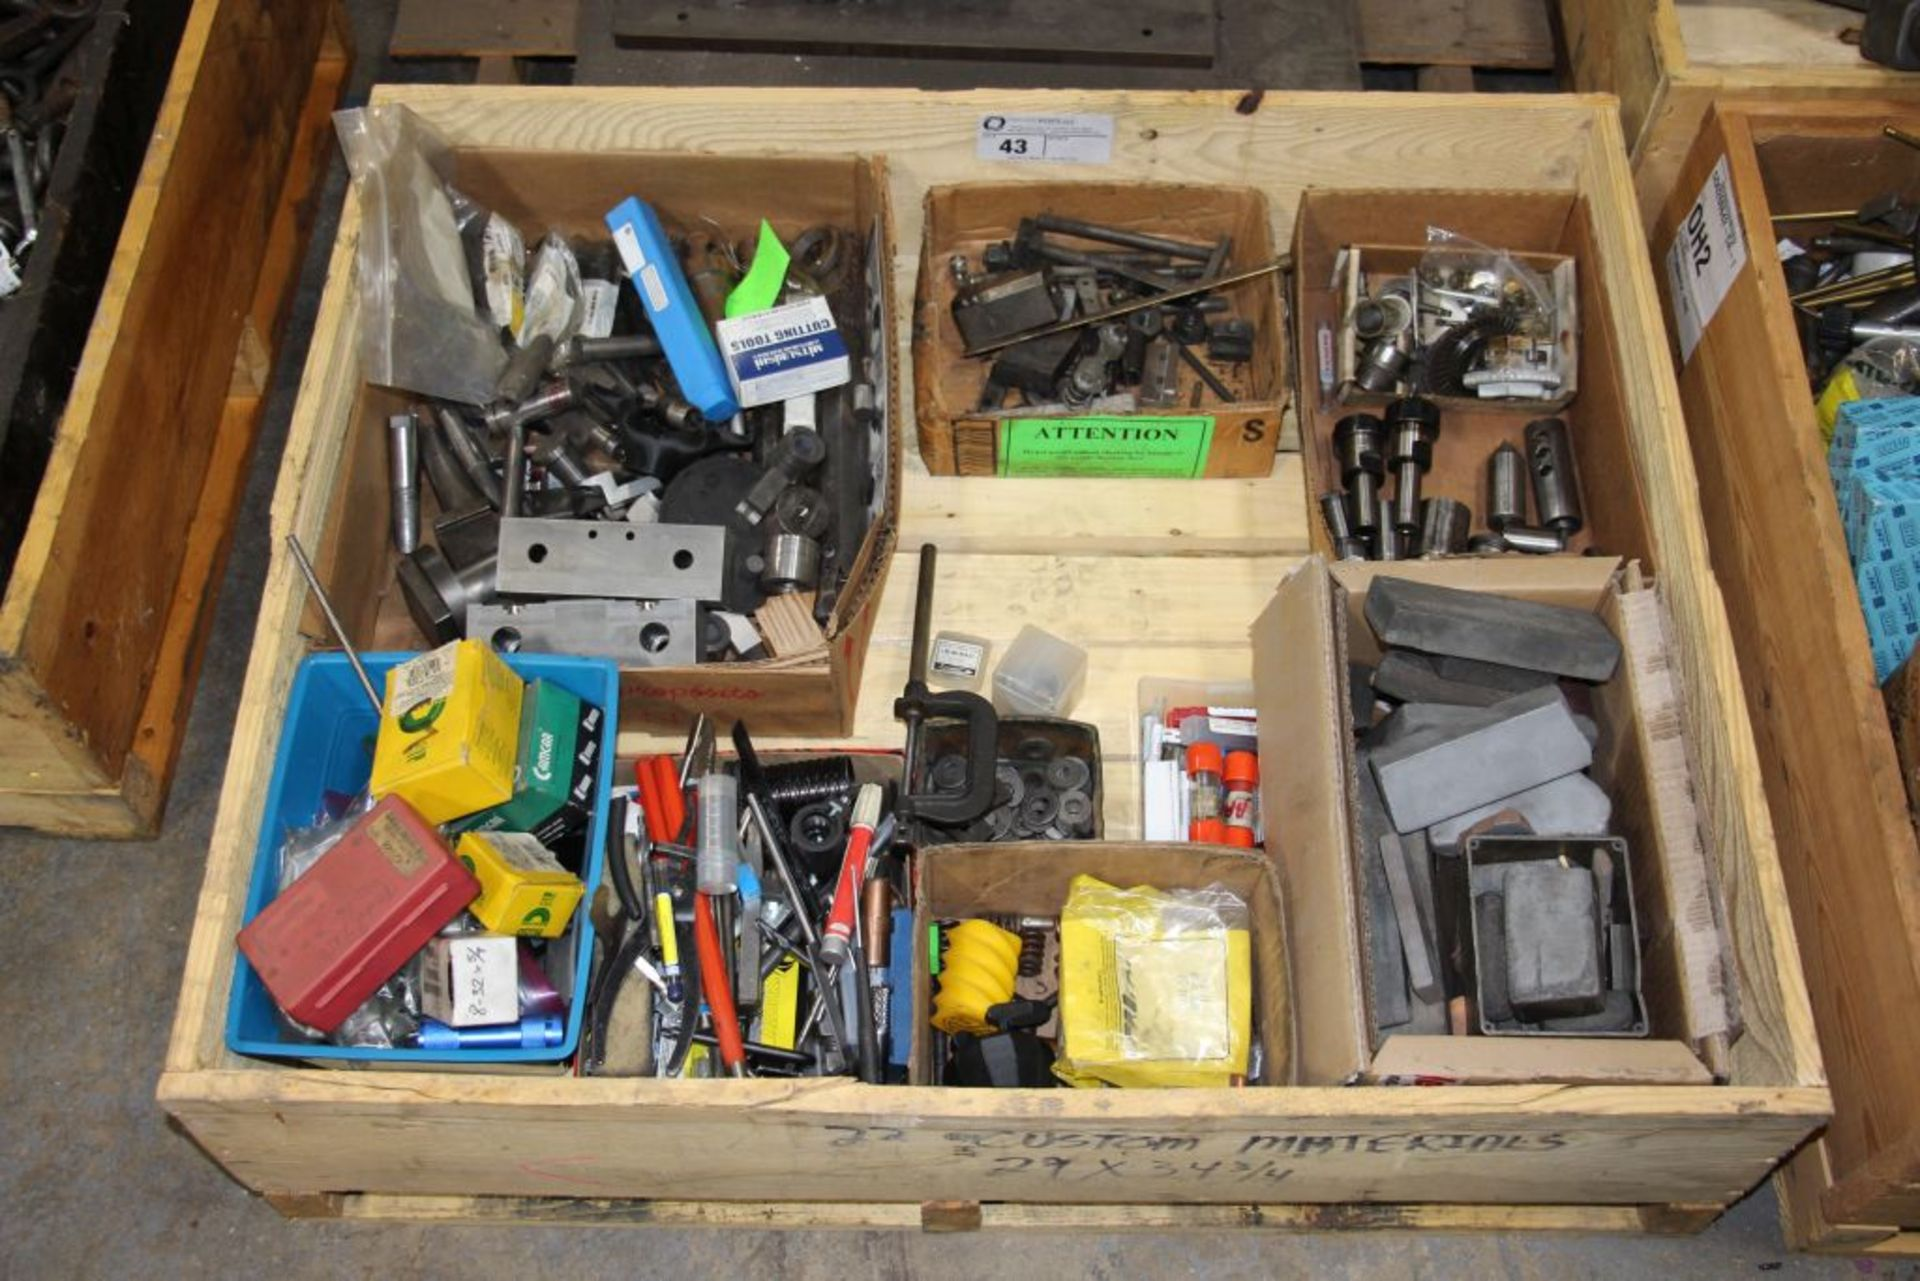 Lot 43 - assortment of tool holders, end mills & misc.